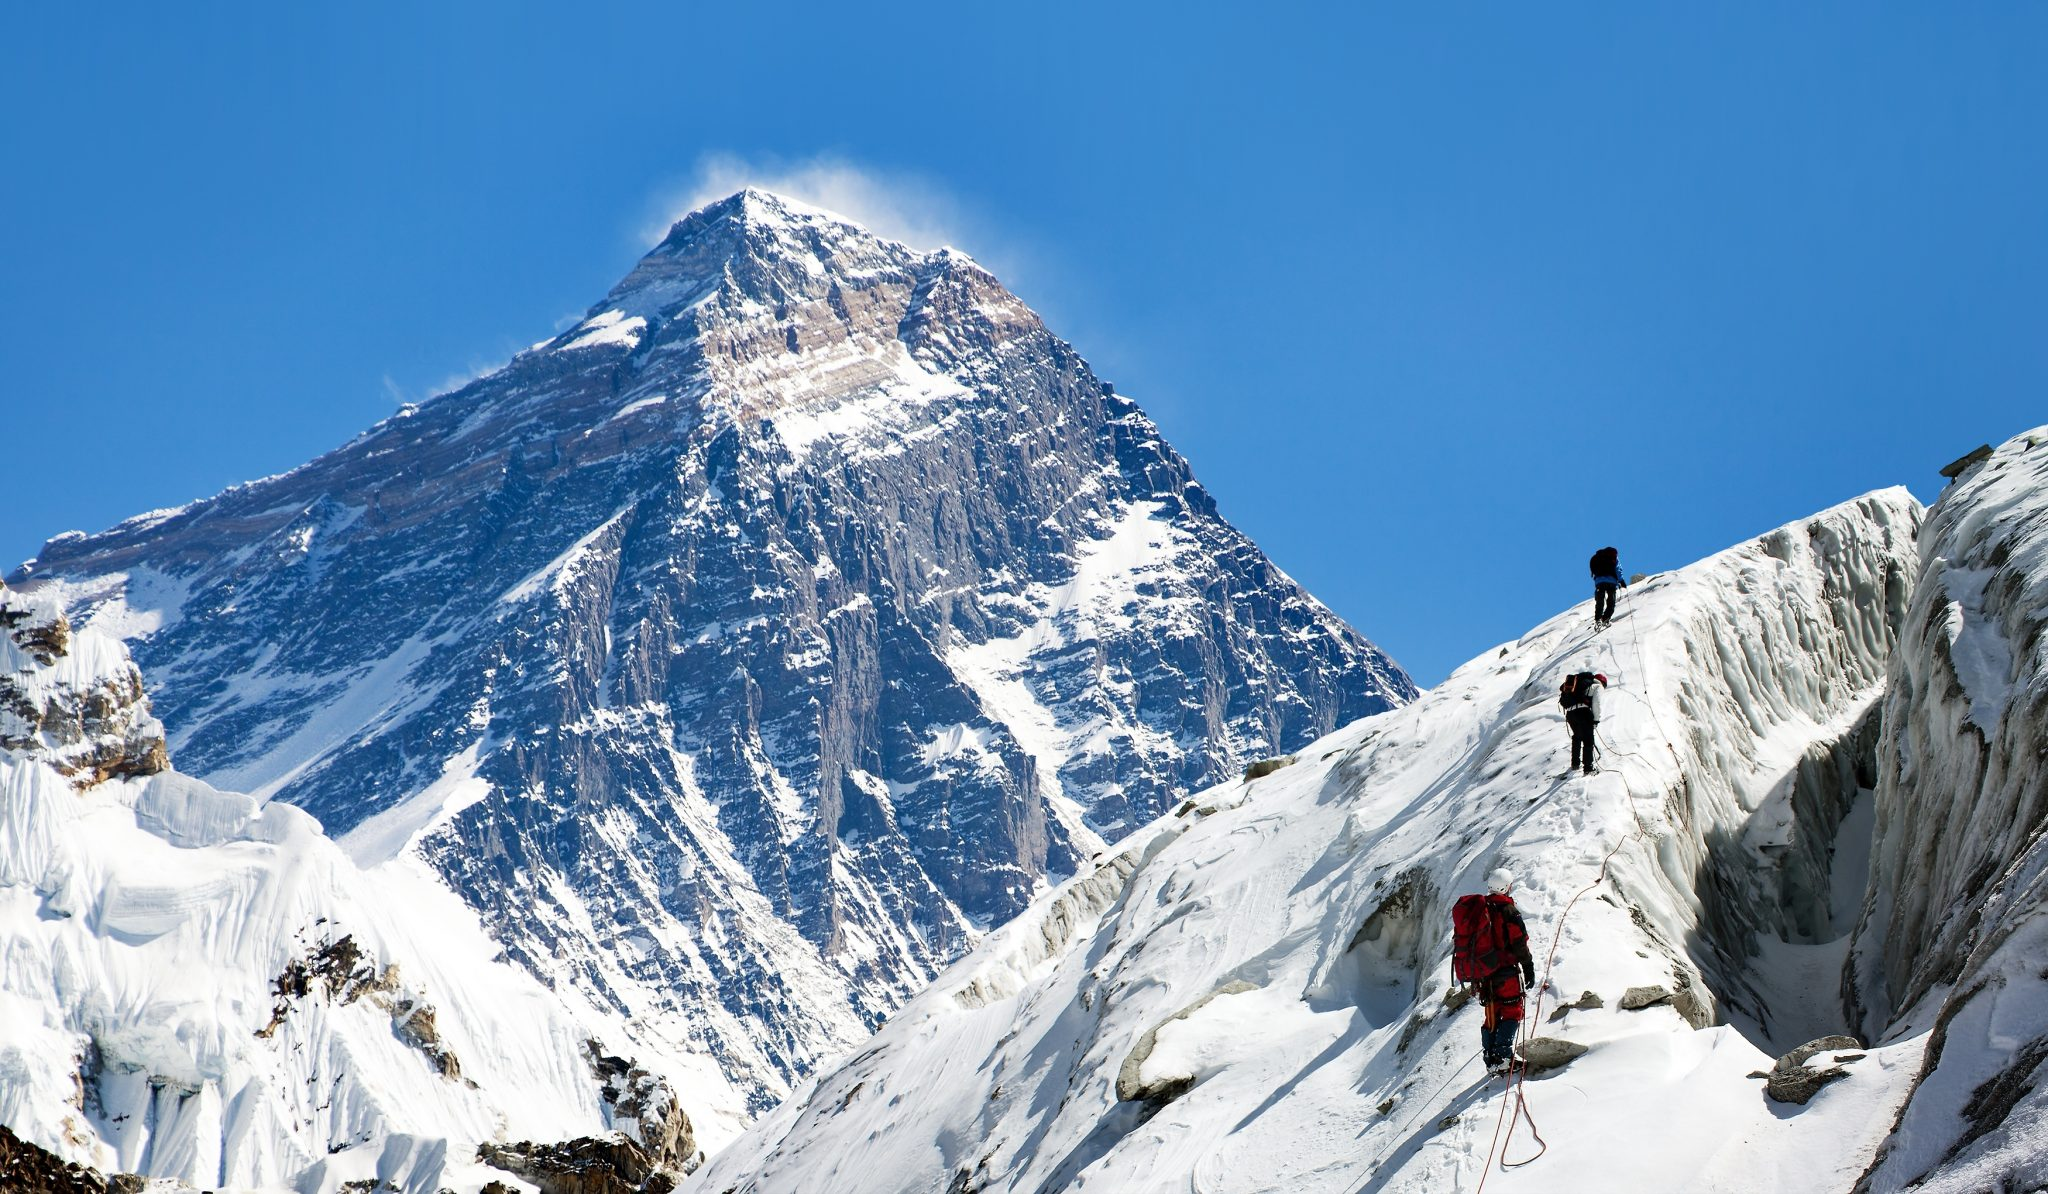 It's Climbing Season On Mt. Everest As Cyclone Fani Approaches